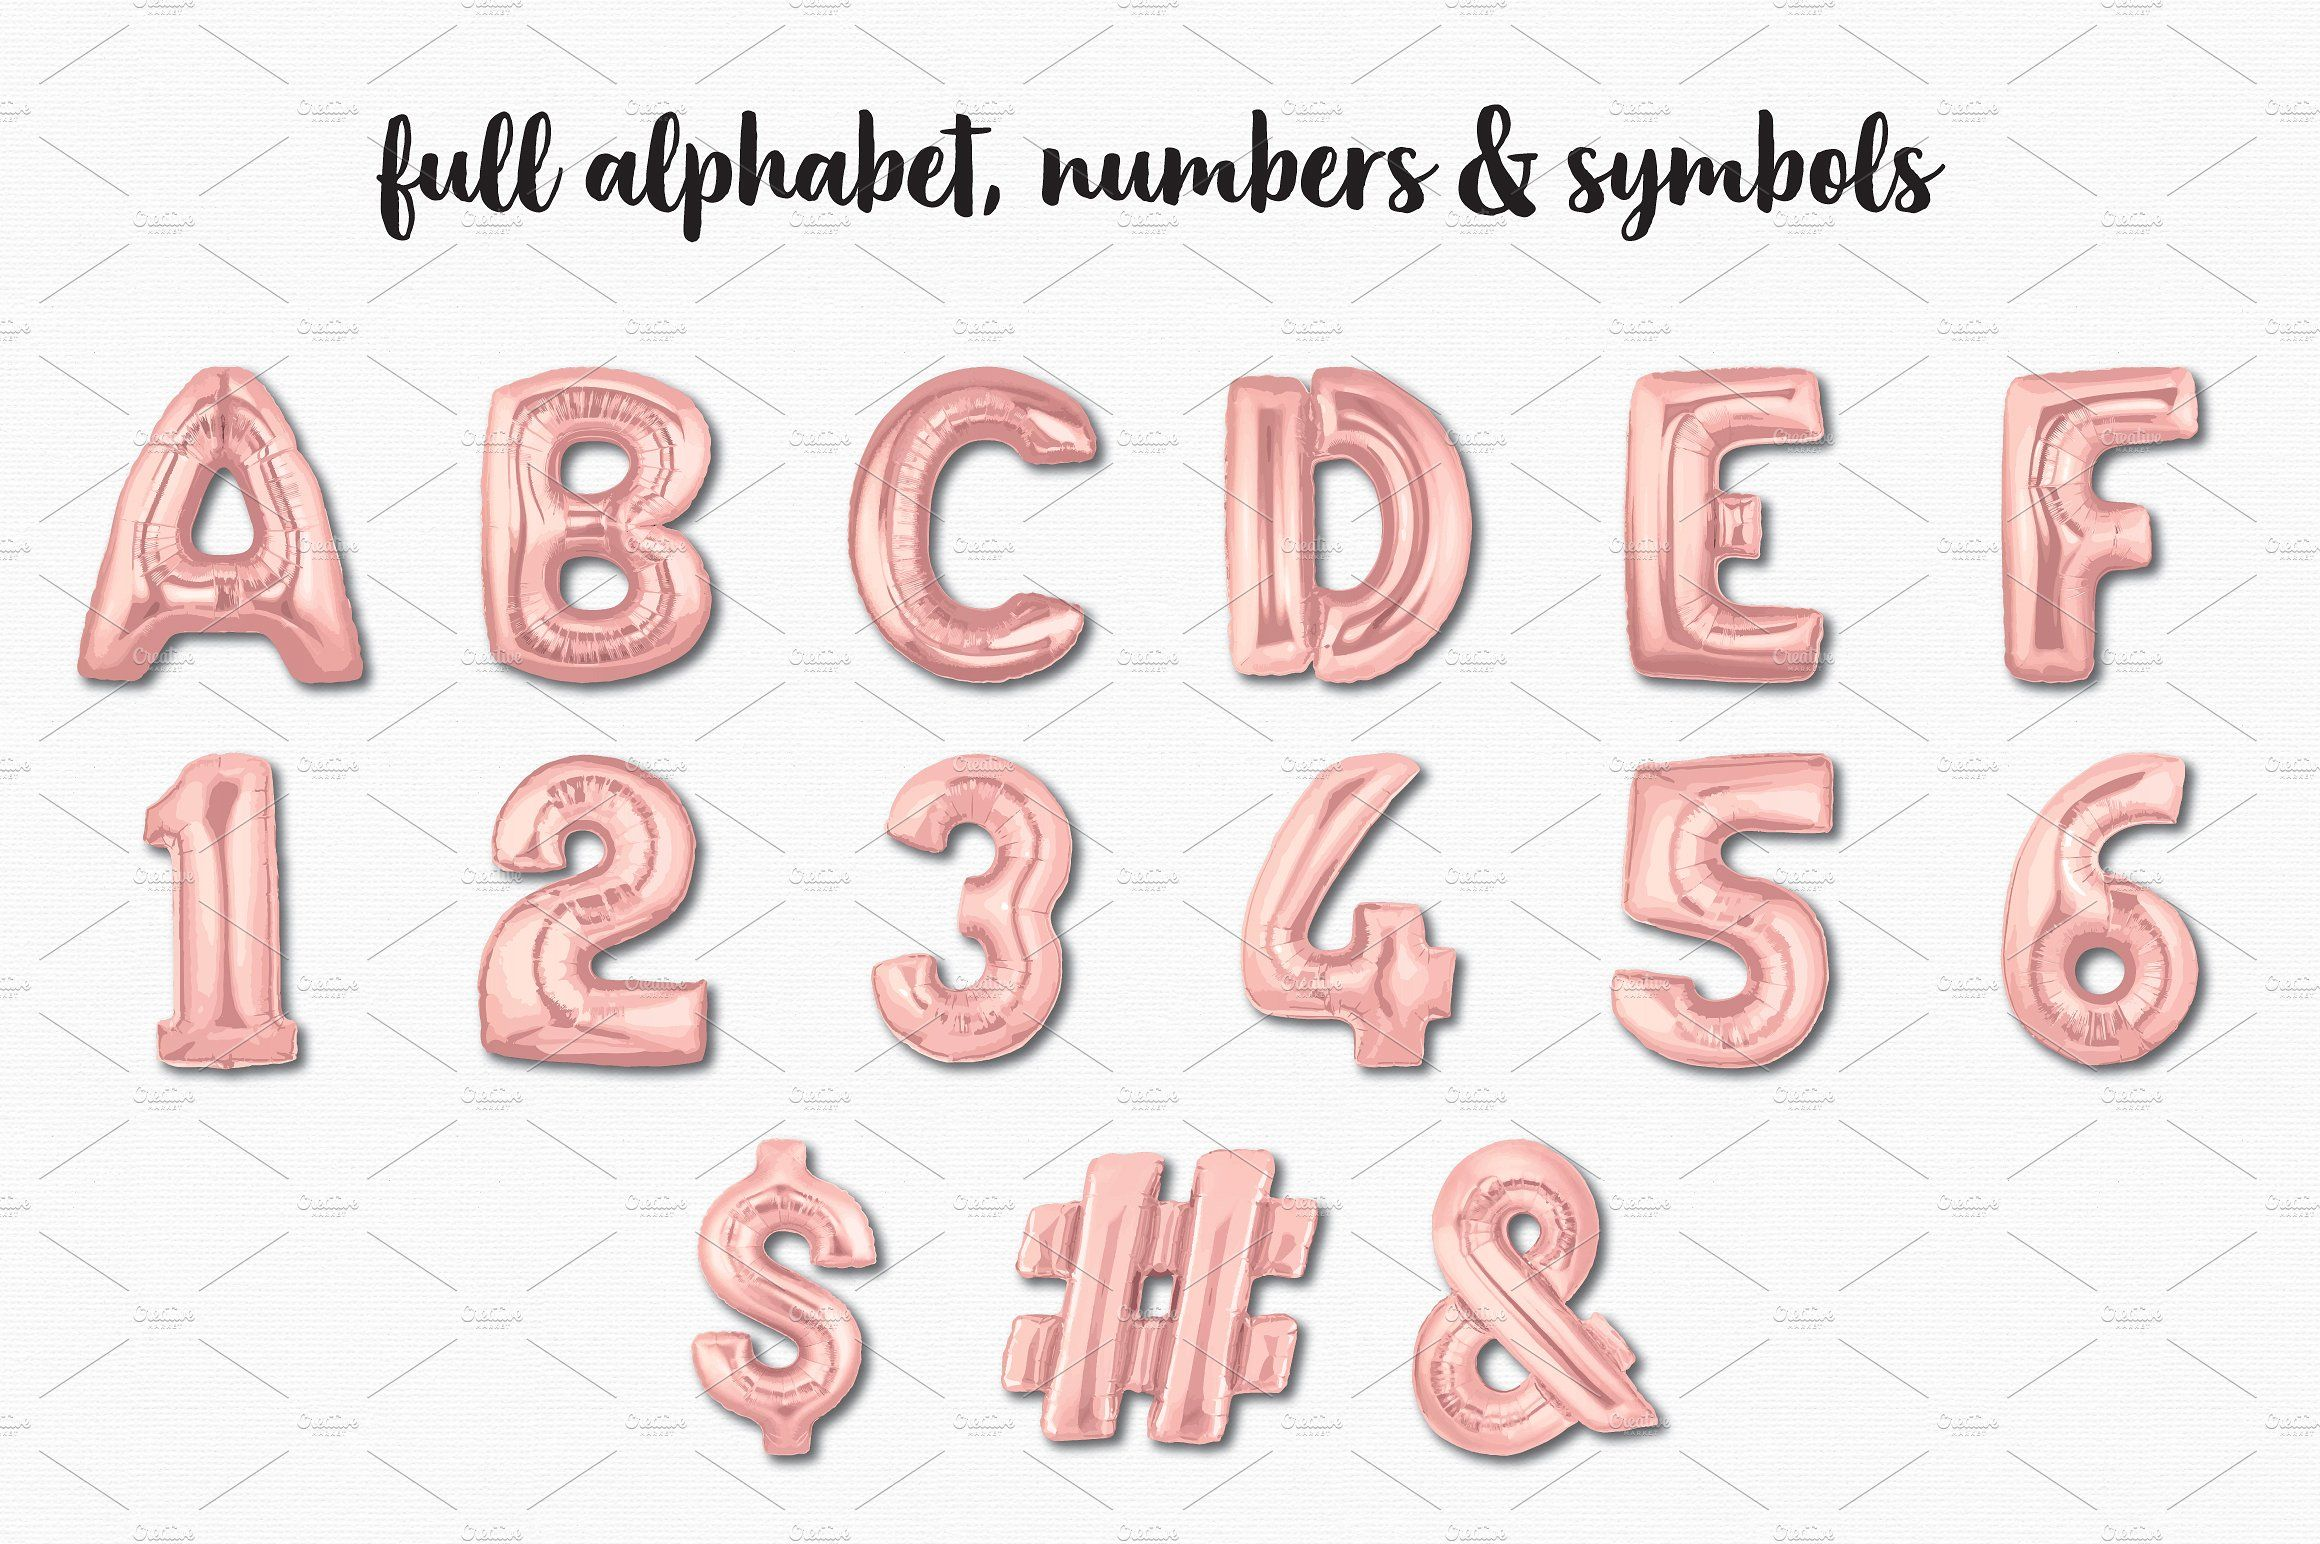 Rose Gold Foil Balloon Bundle #popular#super#numeric#alpha.